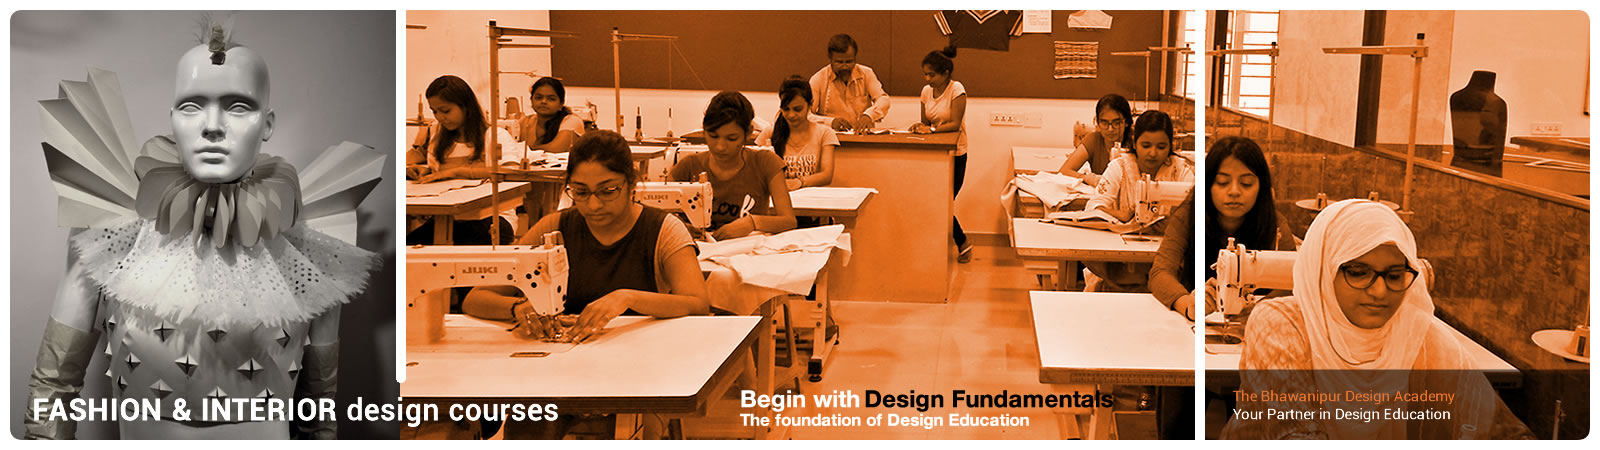 the bhawanipur design academy [bda], fashion design, interior design